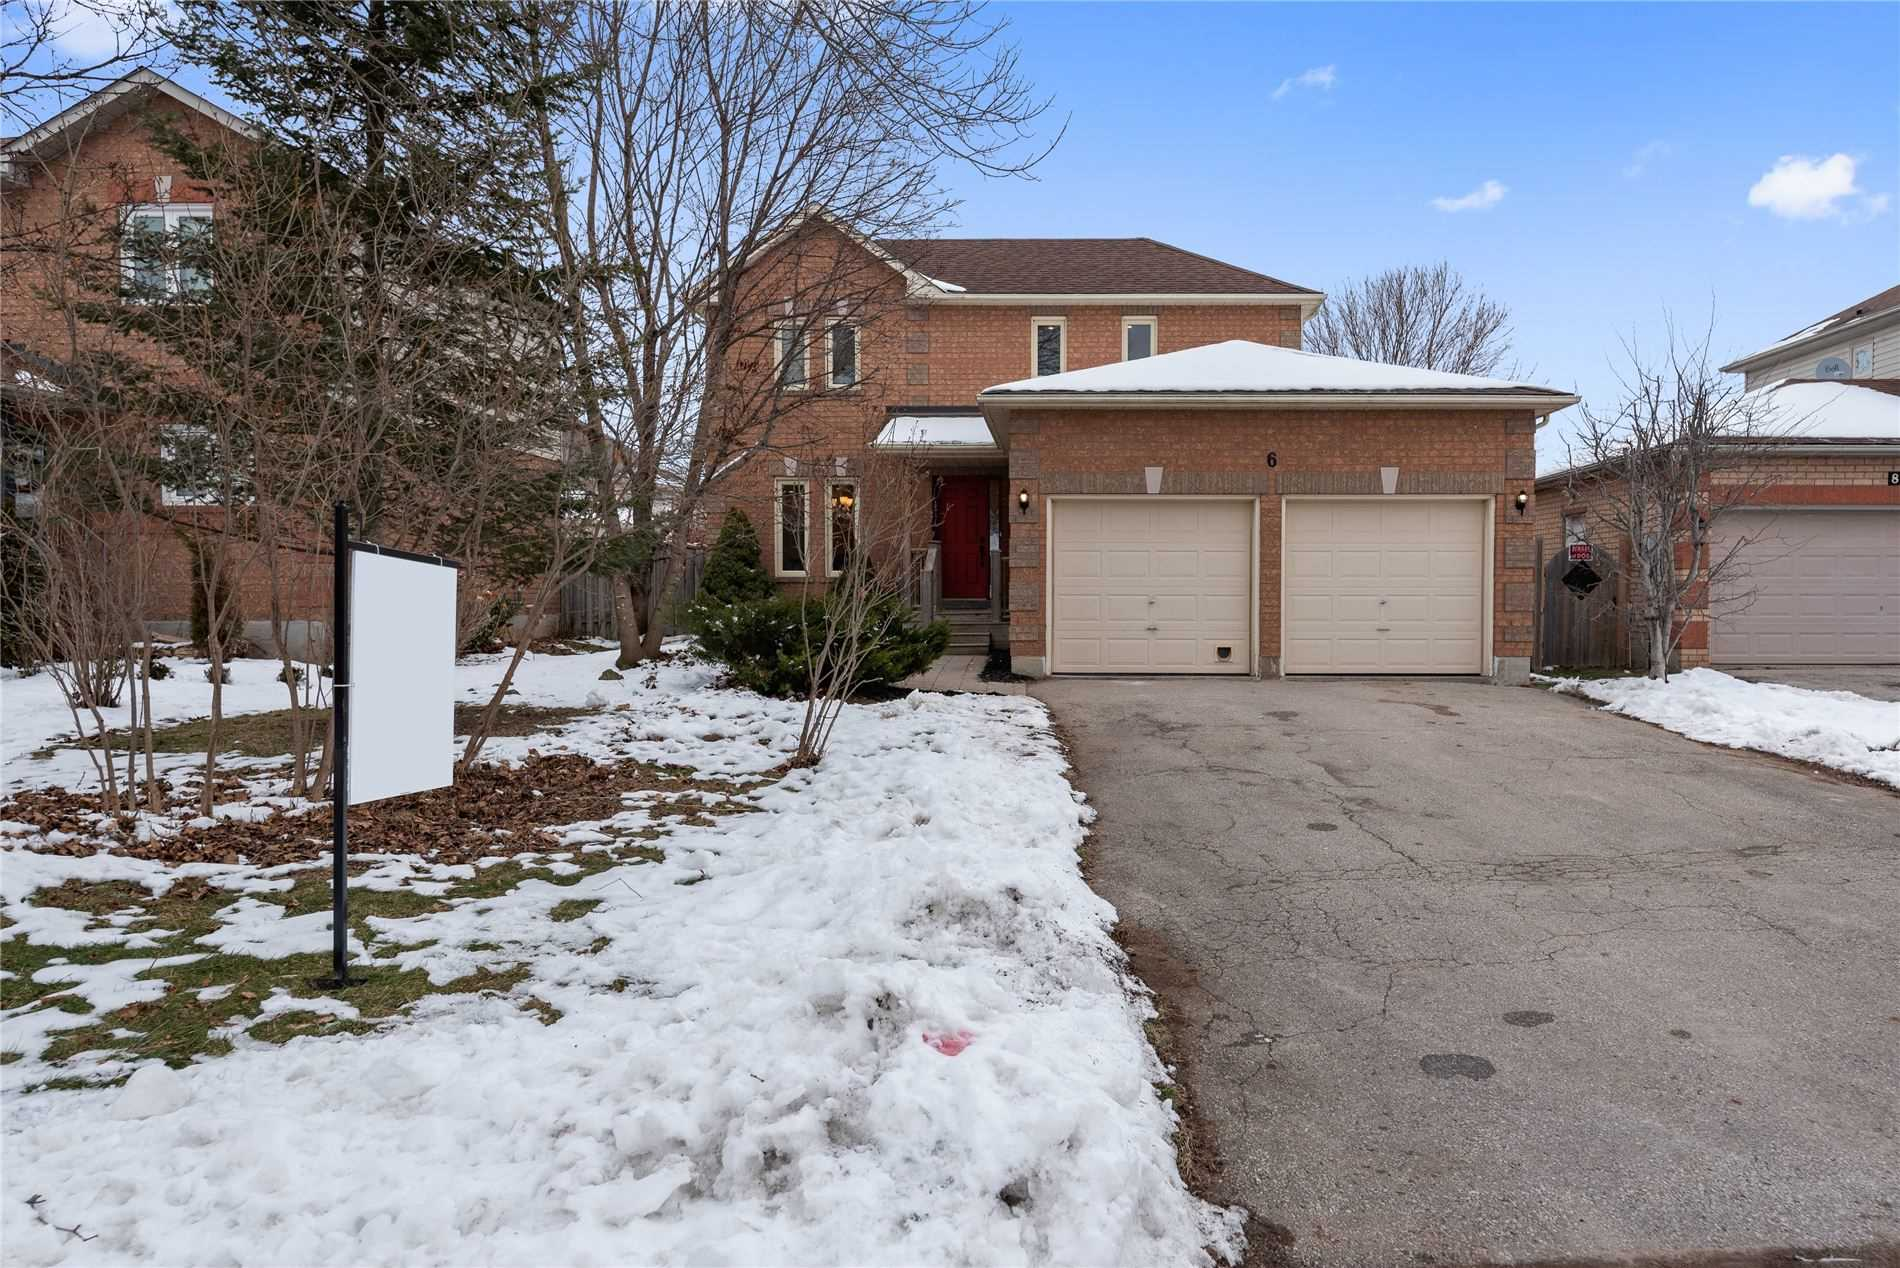 pictures of house for sale MLS: N5079479 located at 6 Dugdale Ave, New Tecumseth L0G1A0